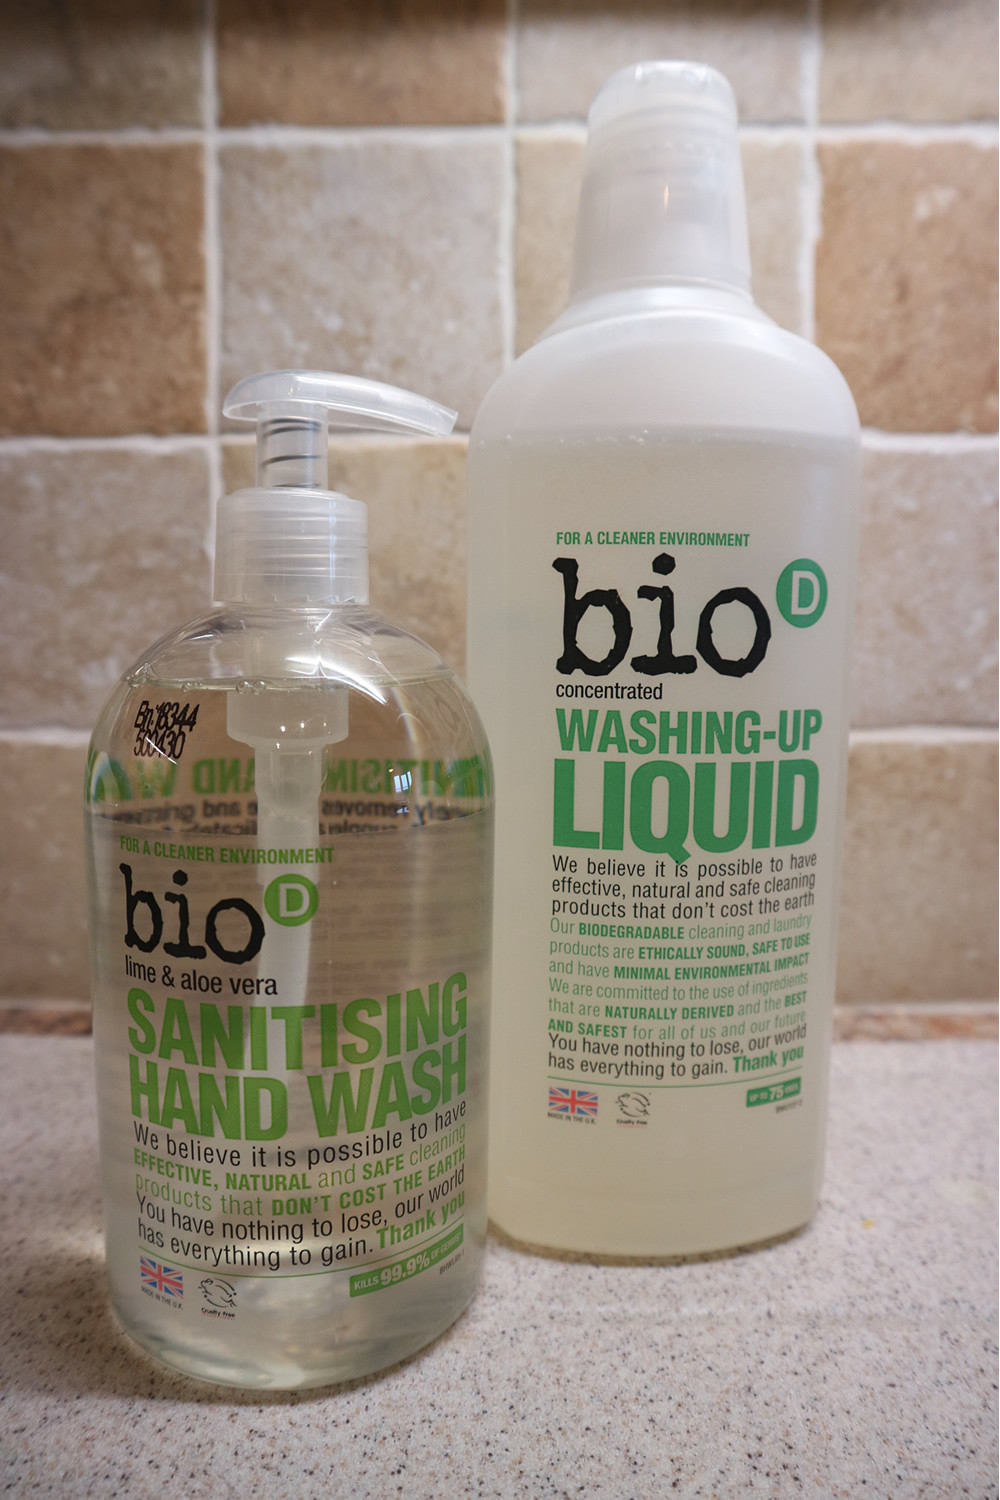 Bio-D Cleaning Products